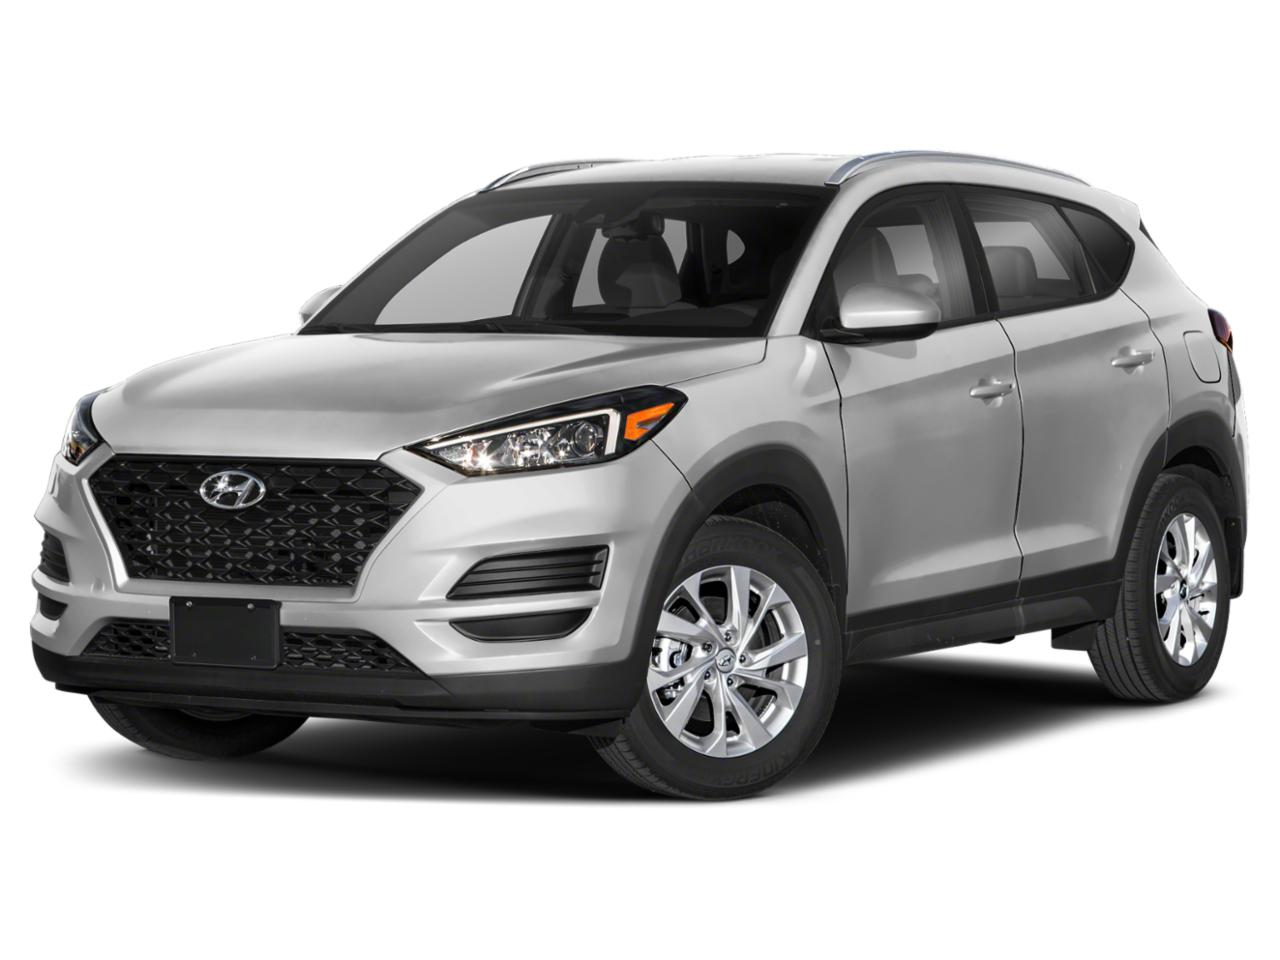 2019 Hyundai Tucson Vehicle Photo in Broussard, LA 70518